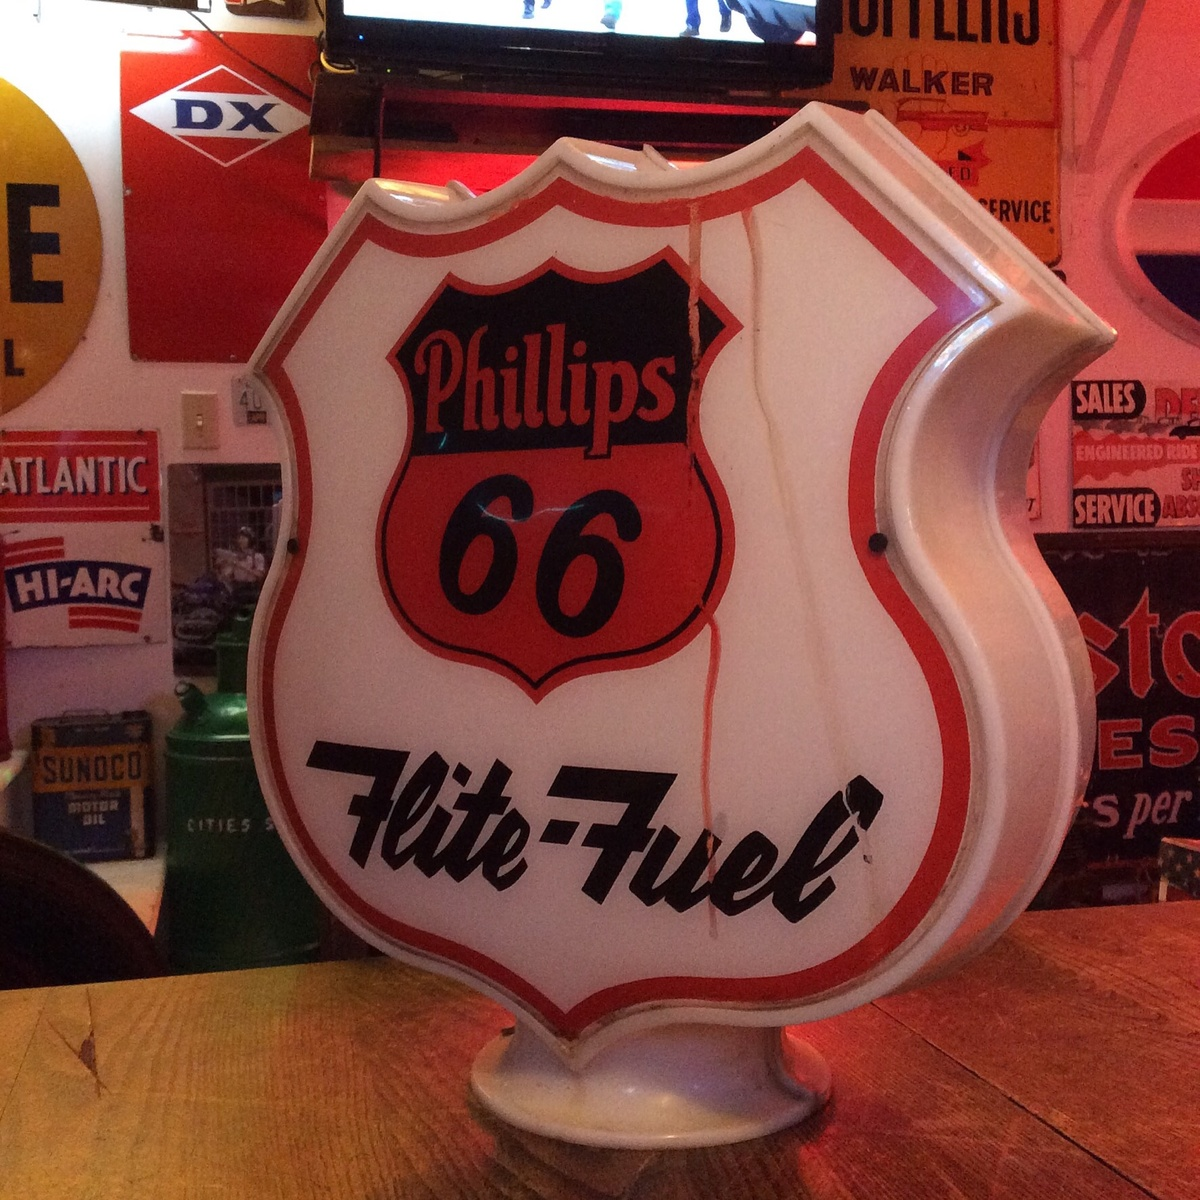 Two Phillips 66 gas globes and a Phillips Unique gas globe